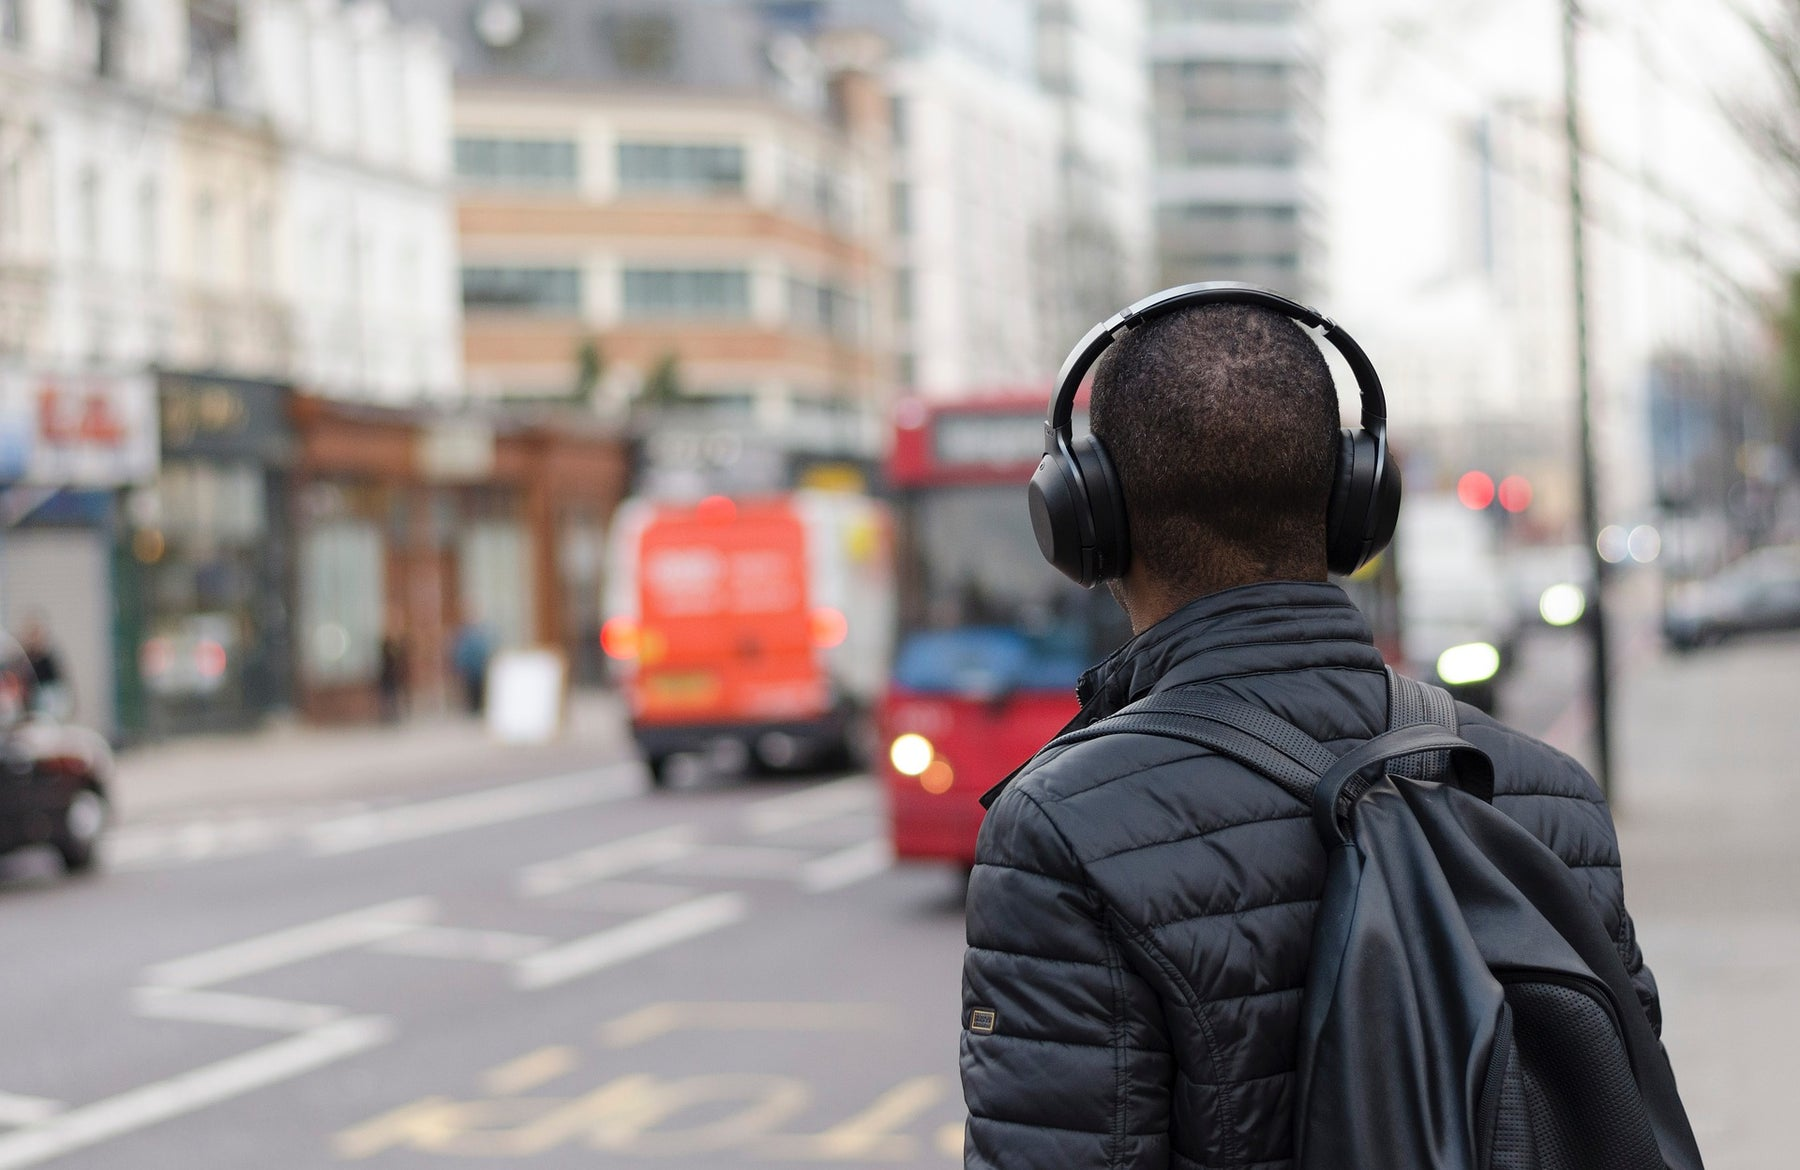 Audiobook listening is on the rise